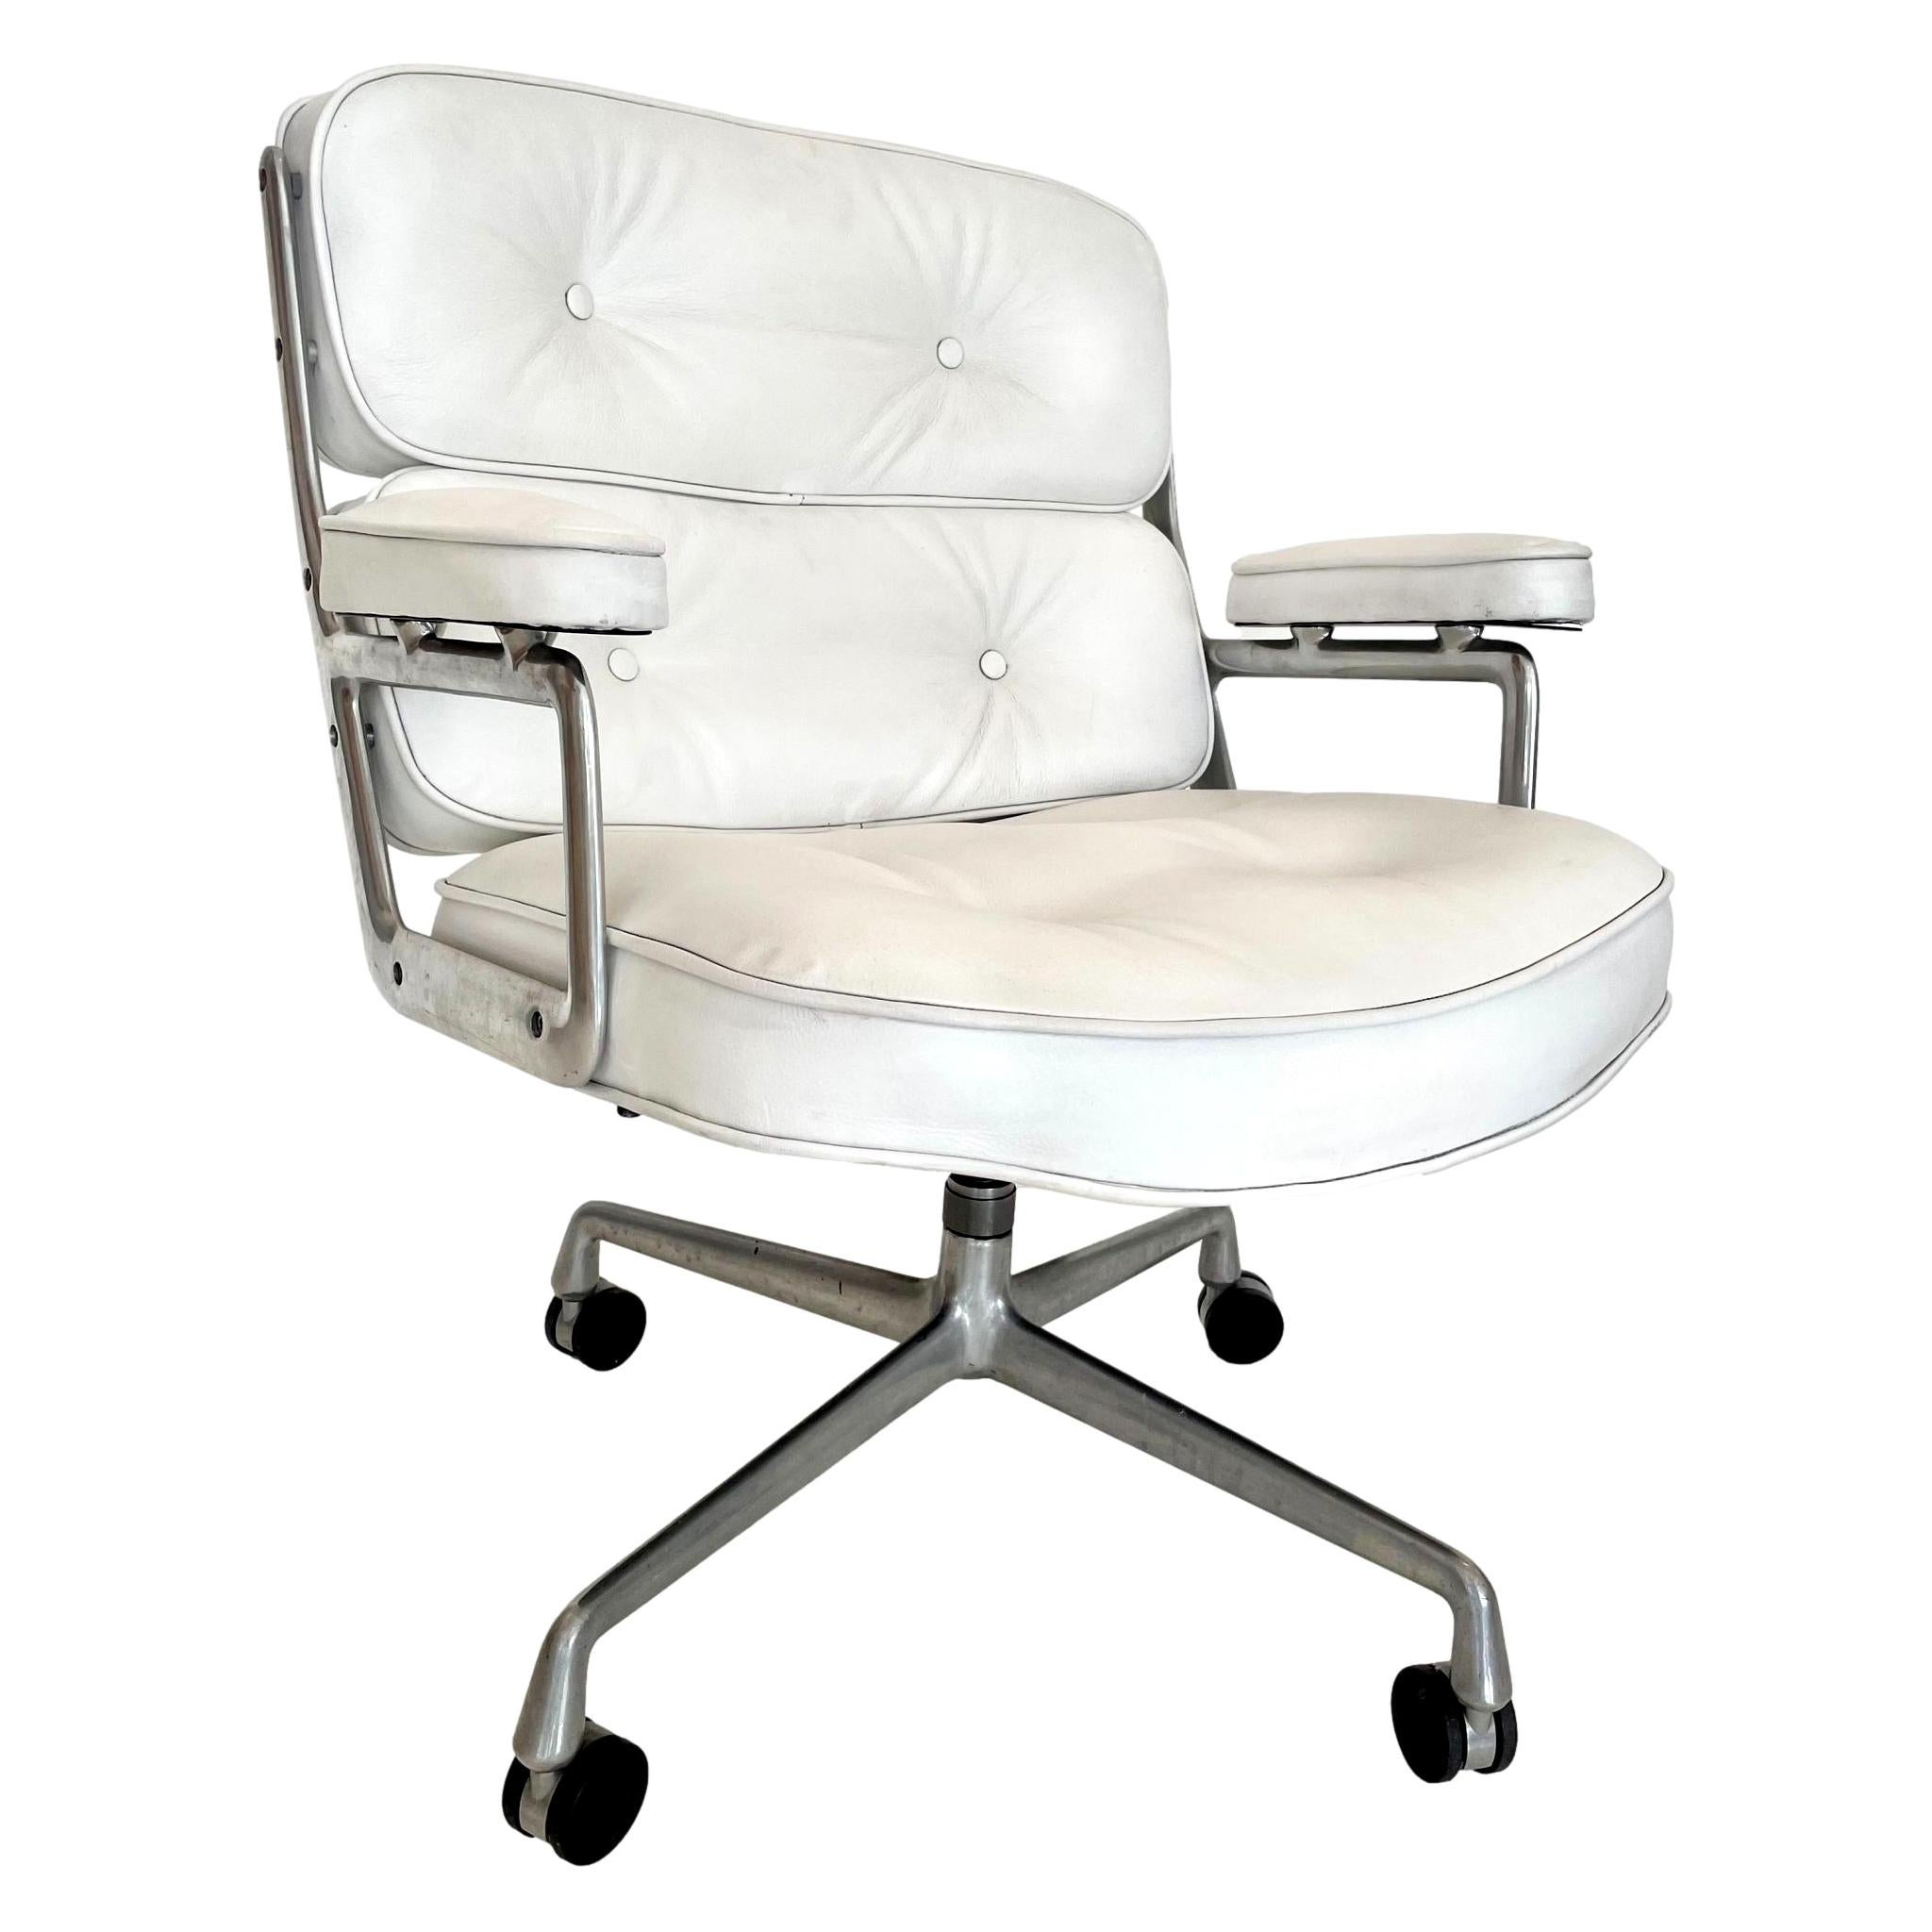 Original Eames Time Life Chair in White Leather